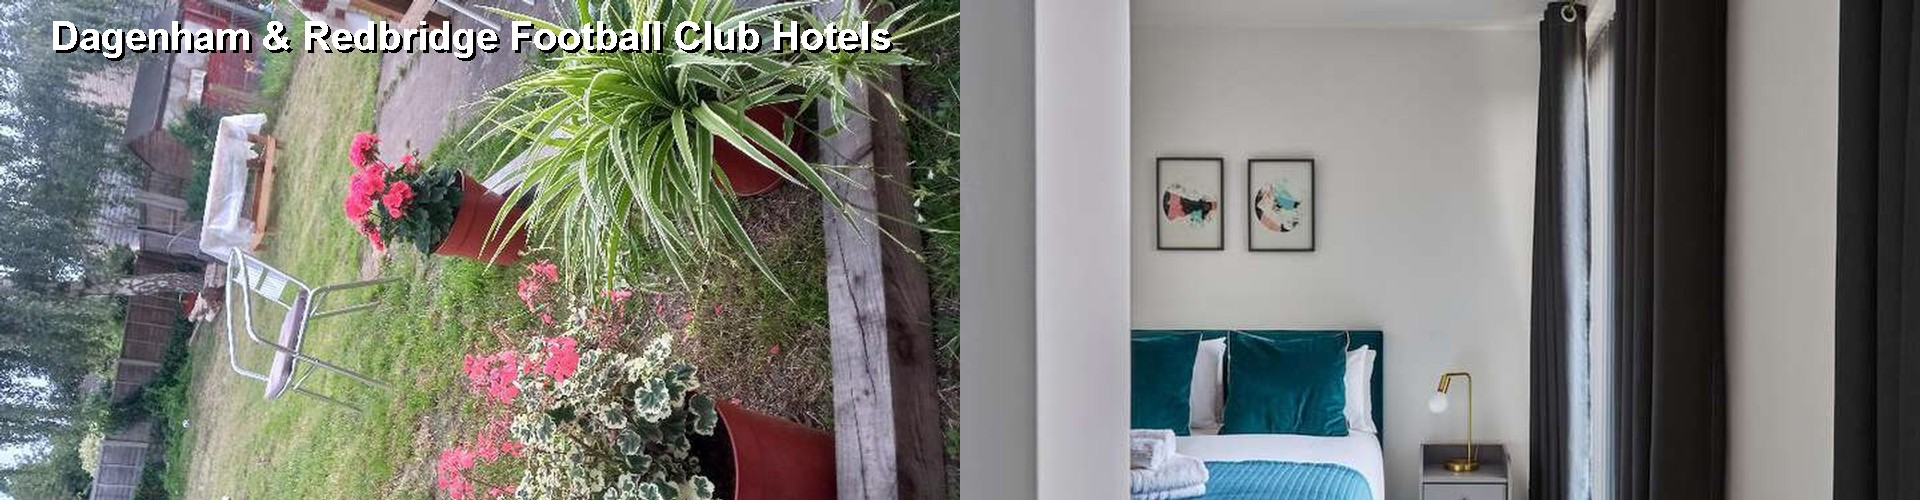 5 Best Hotels near Dagenham & Redbridge Football Club